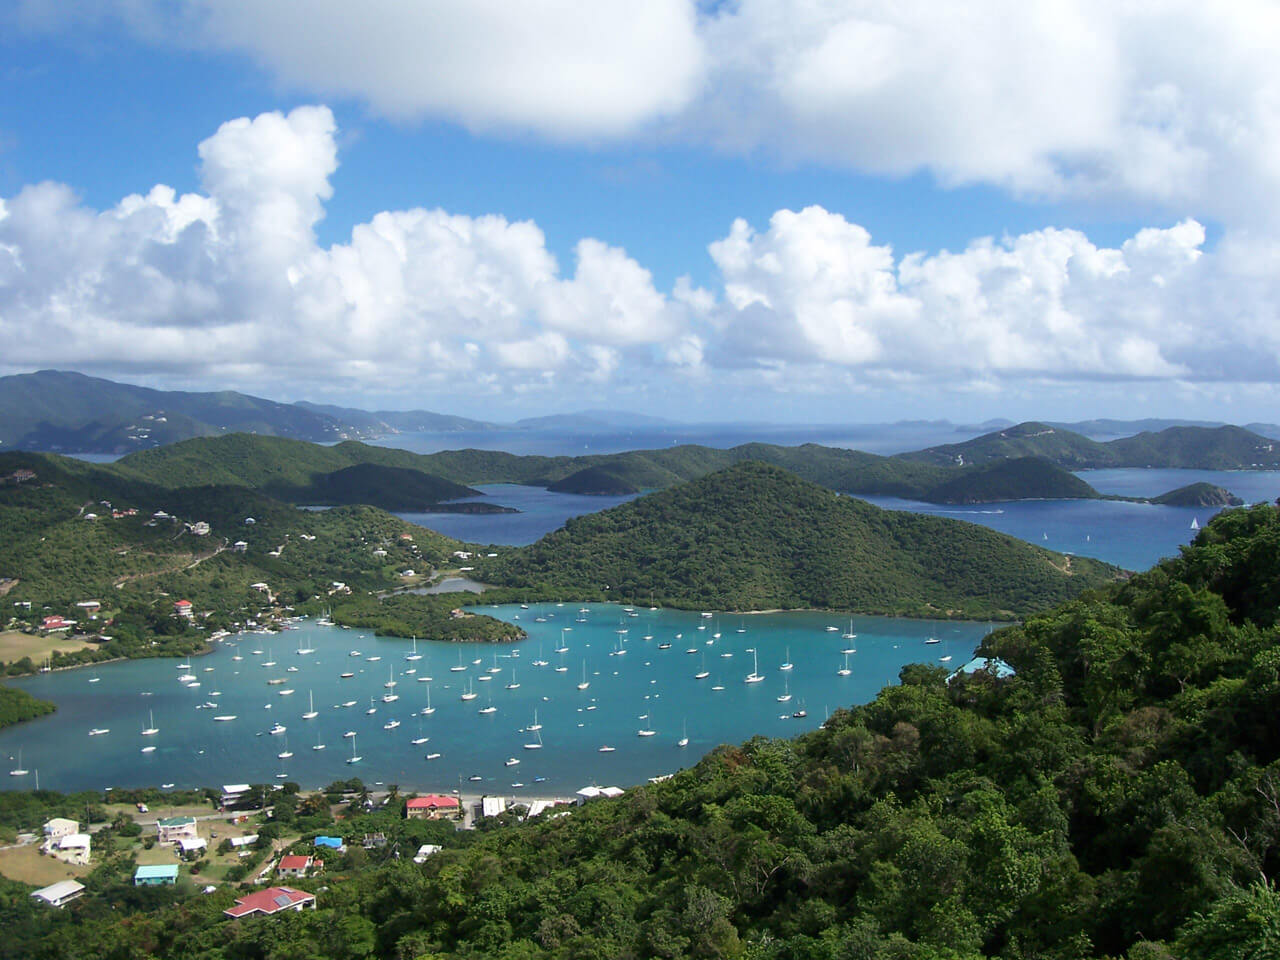 The View from Waterlemon Villa - Coral Bay Harbor, St. John, US Virgin Islands